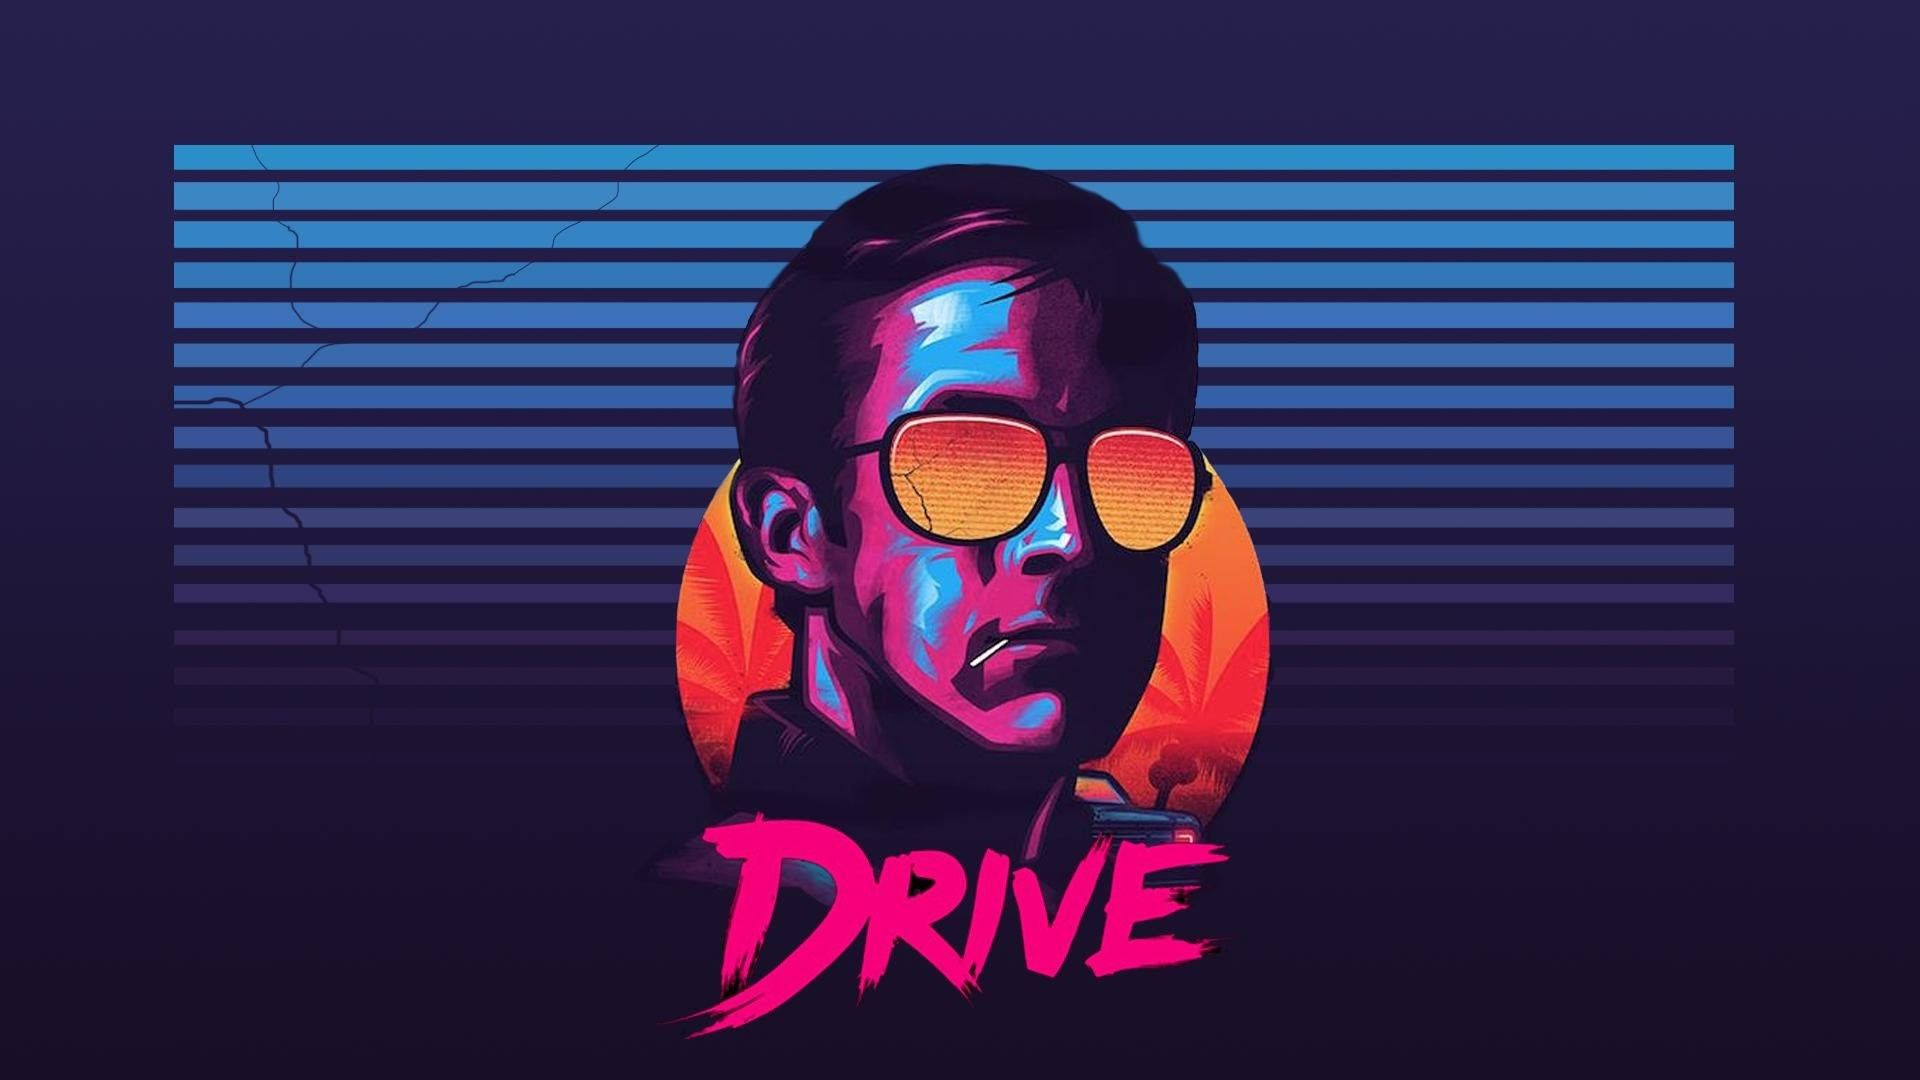 1920x1080 Drive Movie Wallpaper (71+ images)